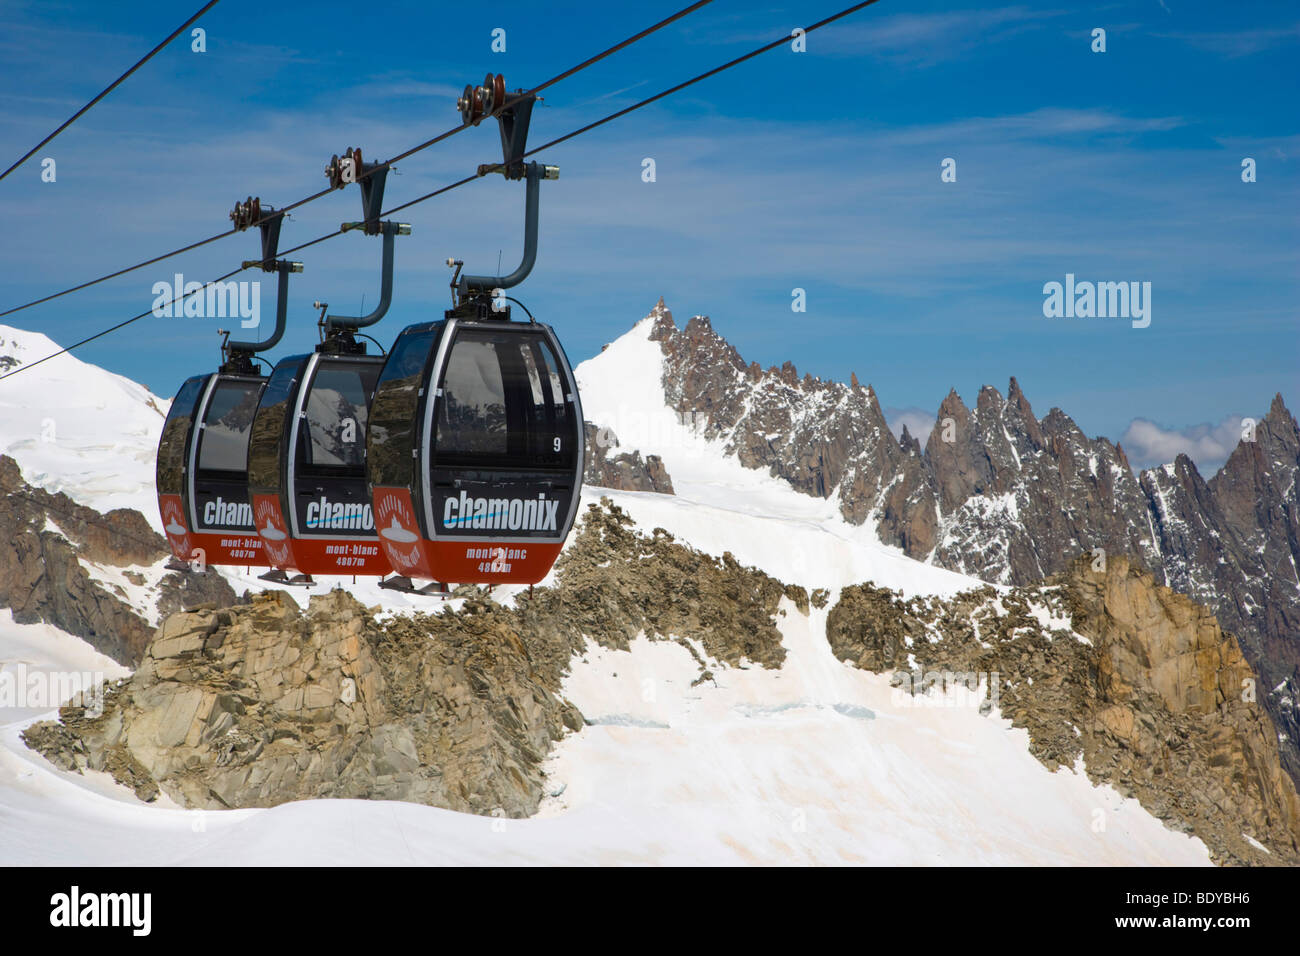 Cable cars between Aiguille du Midi and Punta Helbronner, Funivie Monte Bianco, Mont Blanc Funicular, Mont Blanc - Stock Image